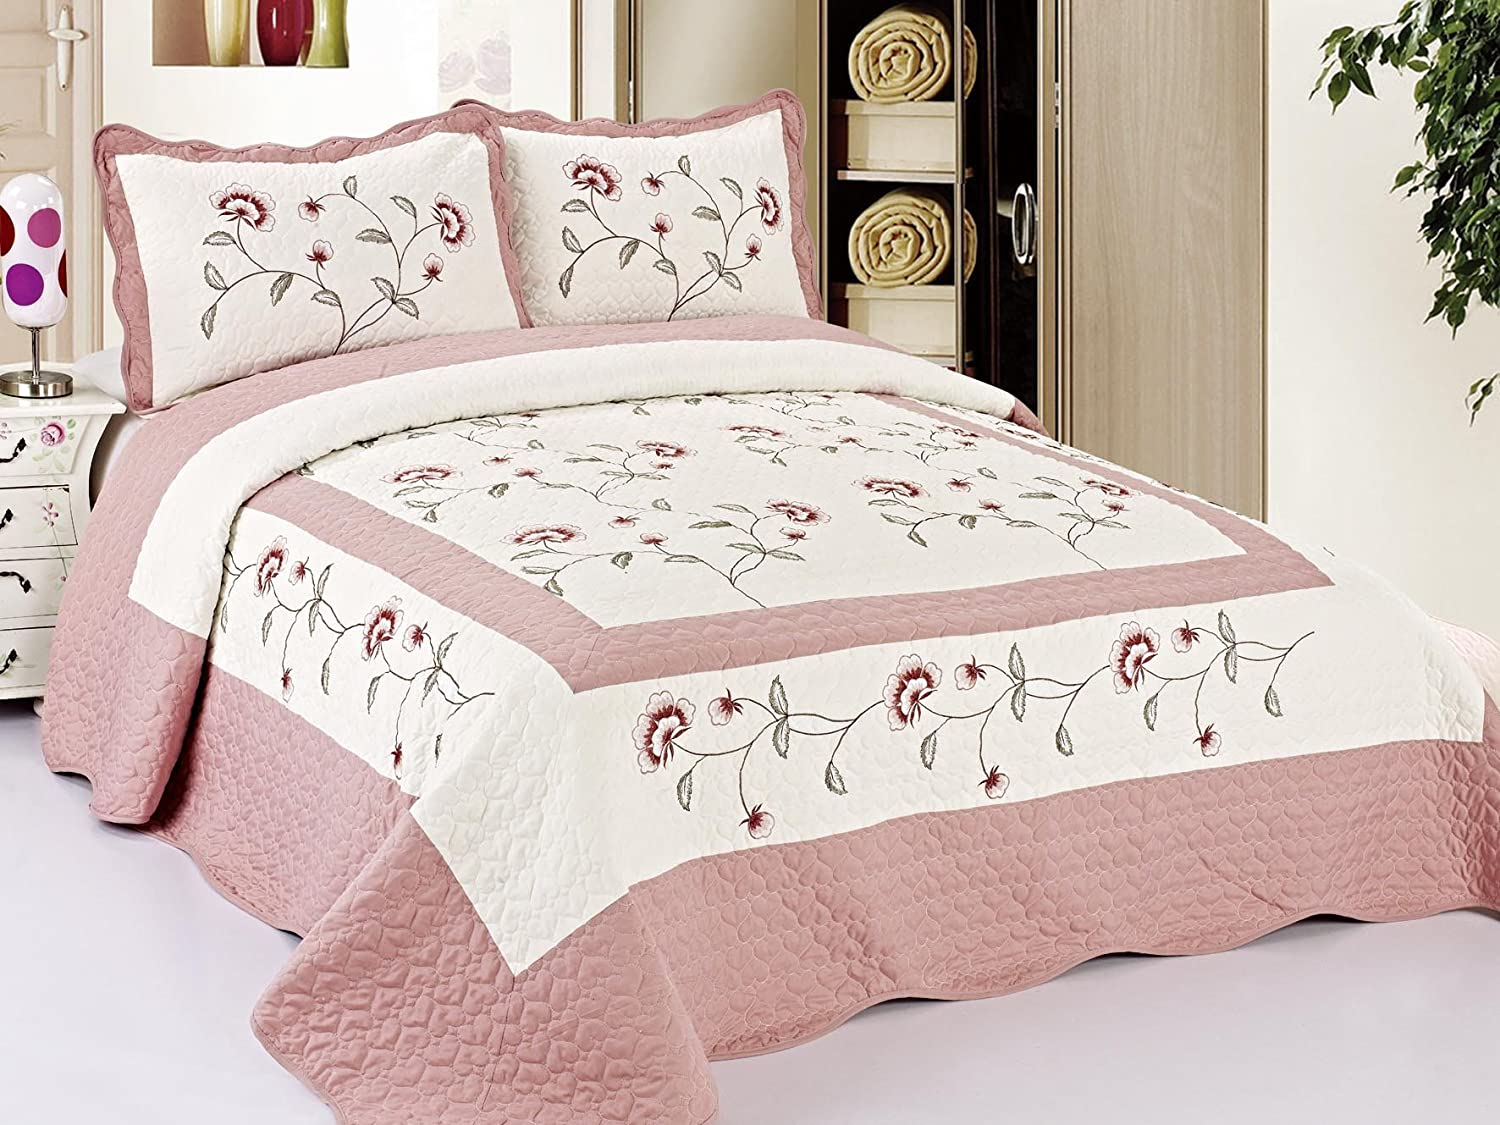 Luxury Discounts 3 Piece Floral Embroidered Quilt Bedspread